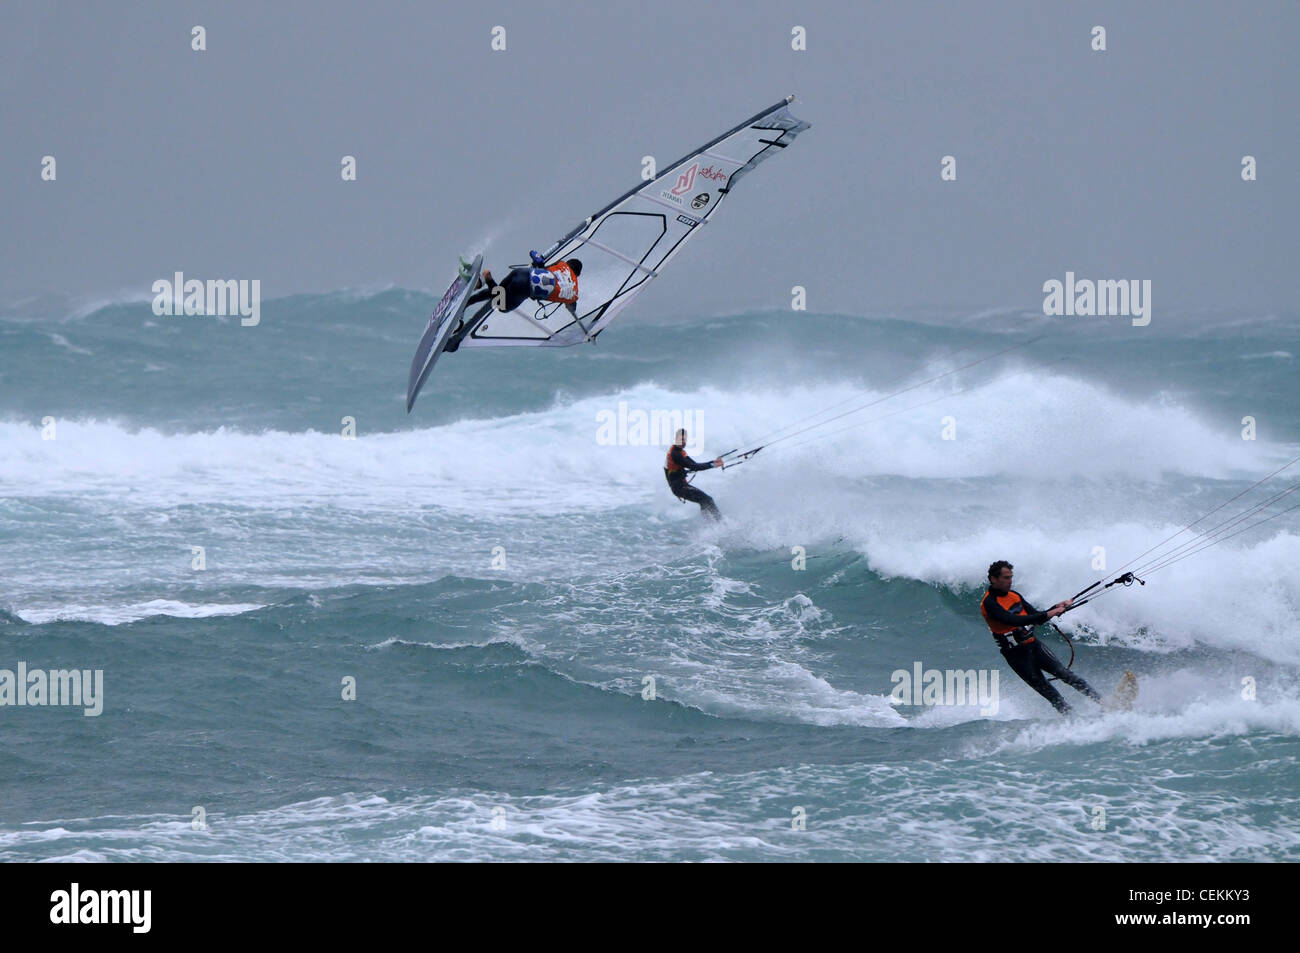 Storm Rider 2012, The Israeli wind surfing Competition in Bat Galim, Haifa.February 17, 2012 . Photo by Shay Levy - Stock Image